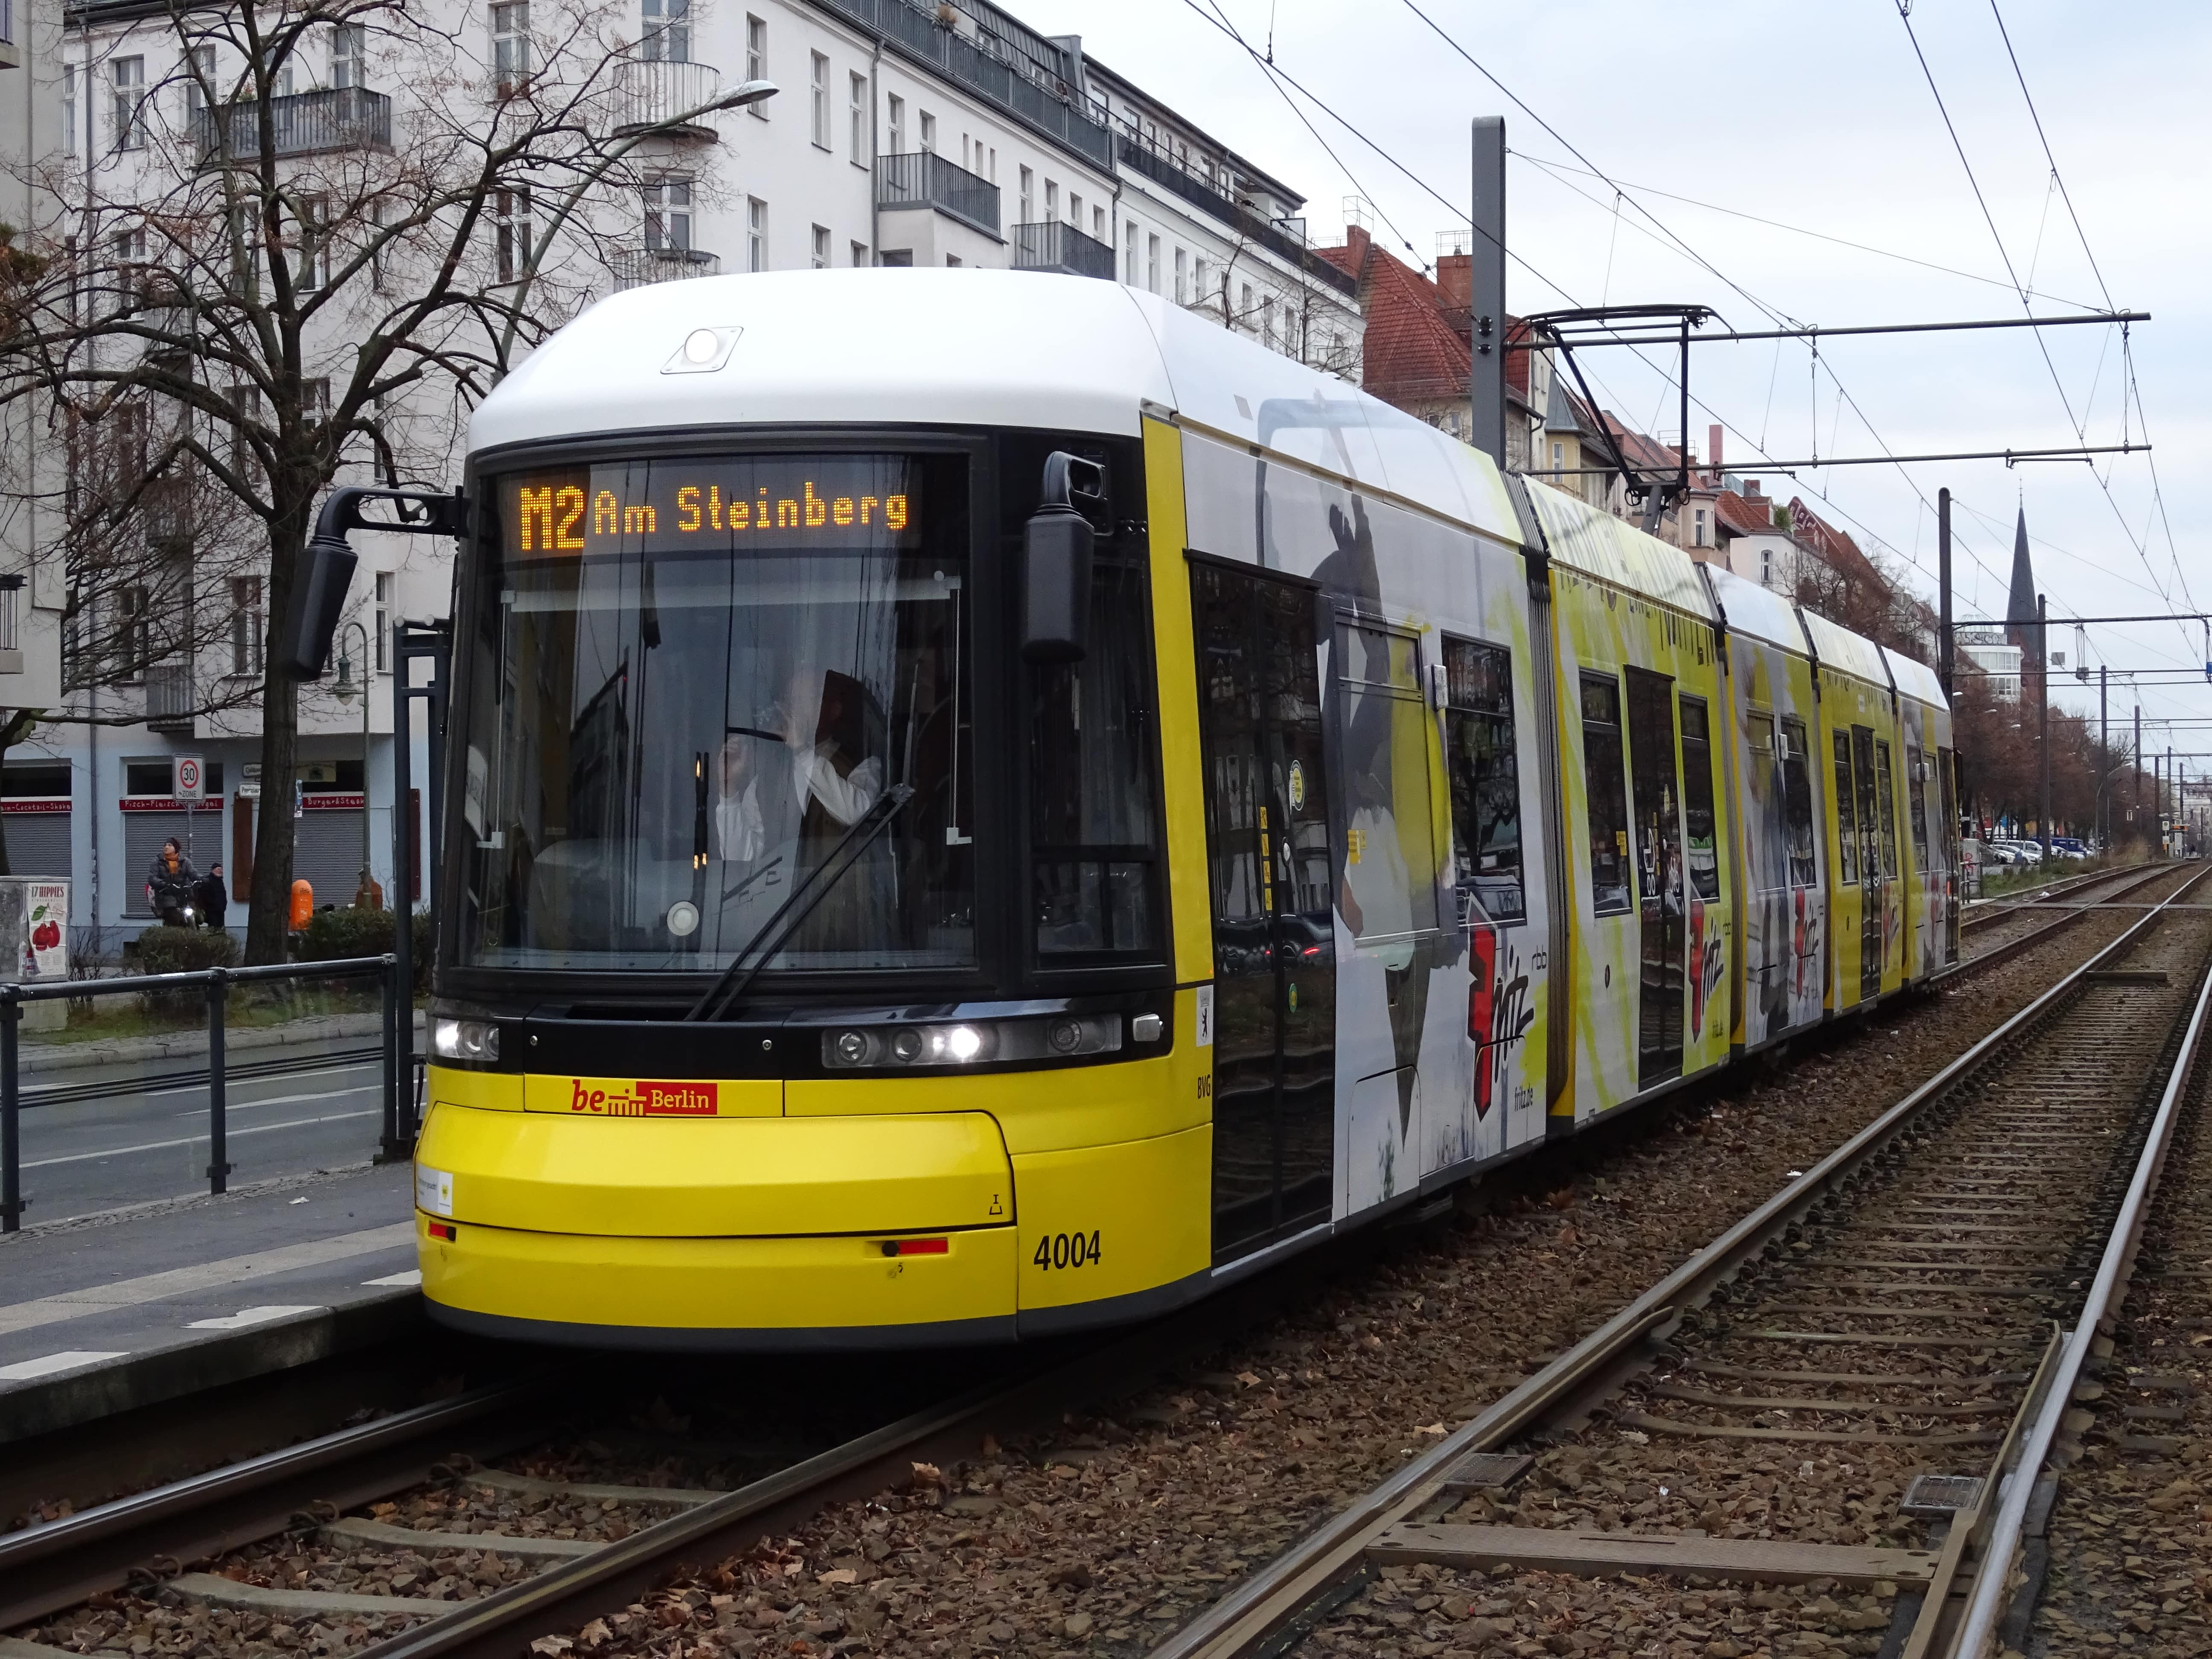 Berlin low-floor articulated tram 4004 on fast line M2 at the stop Prenzlauer Allee/Danziger Str. (2018).  Berliner Verkehrsbetriebe (BVG). Low-floor articulated tram 4004, manufacturer Bombardier, type F6Z, serie 4001-4034, on fast line M2 (2), in the direction towards Am Steinberg.